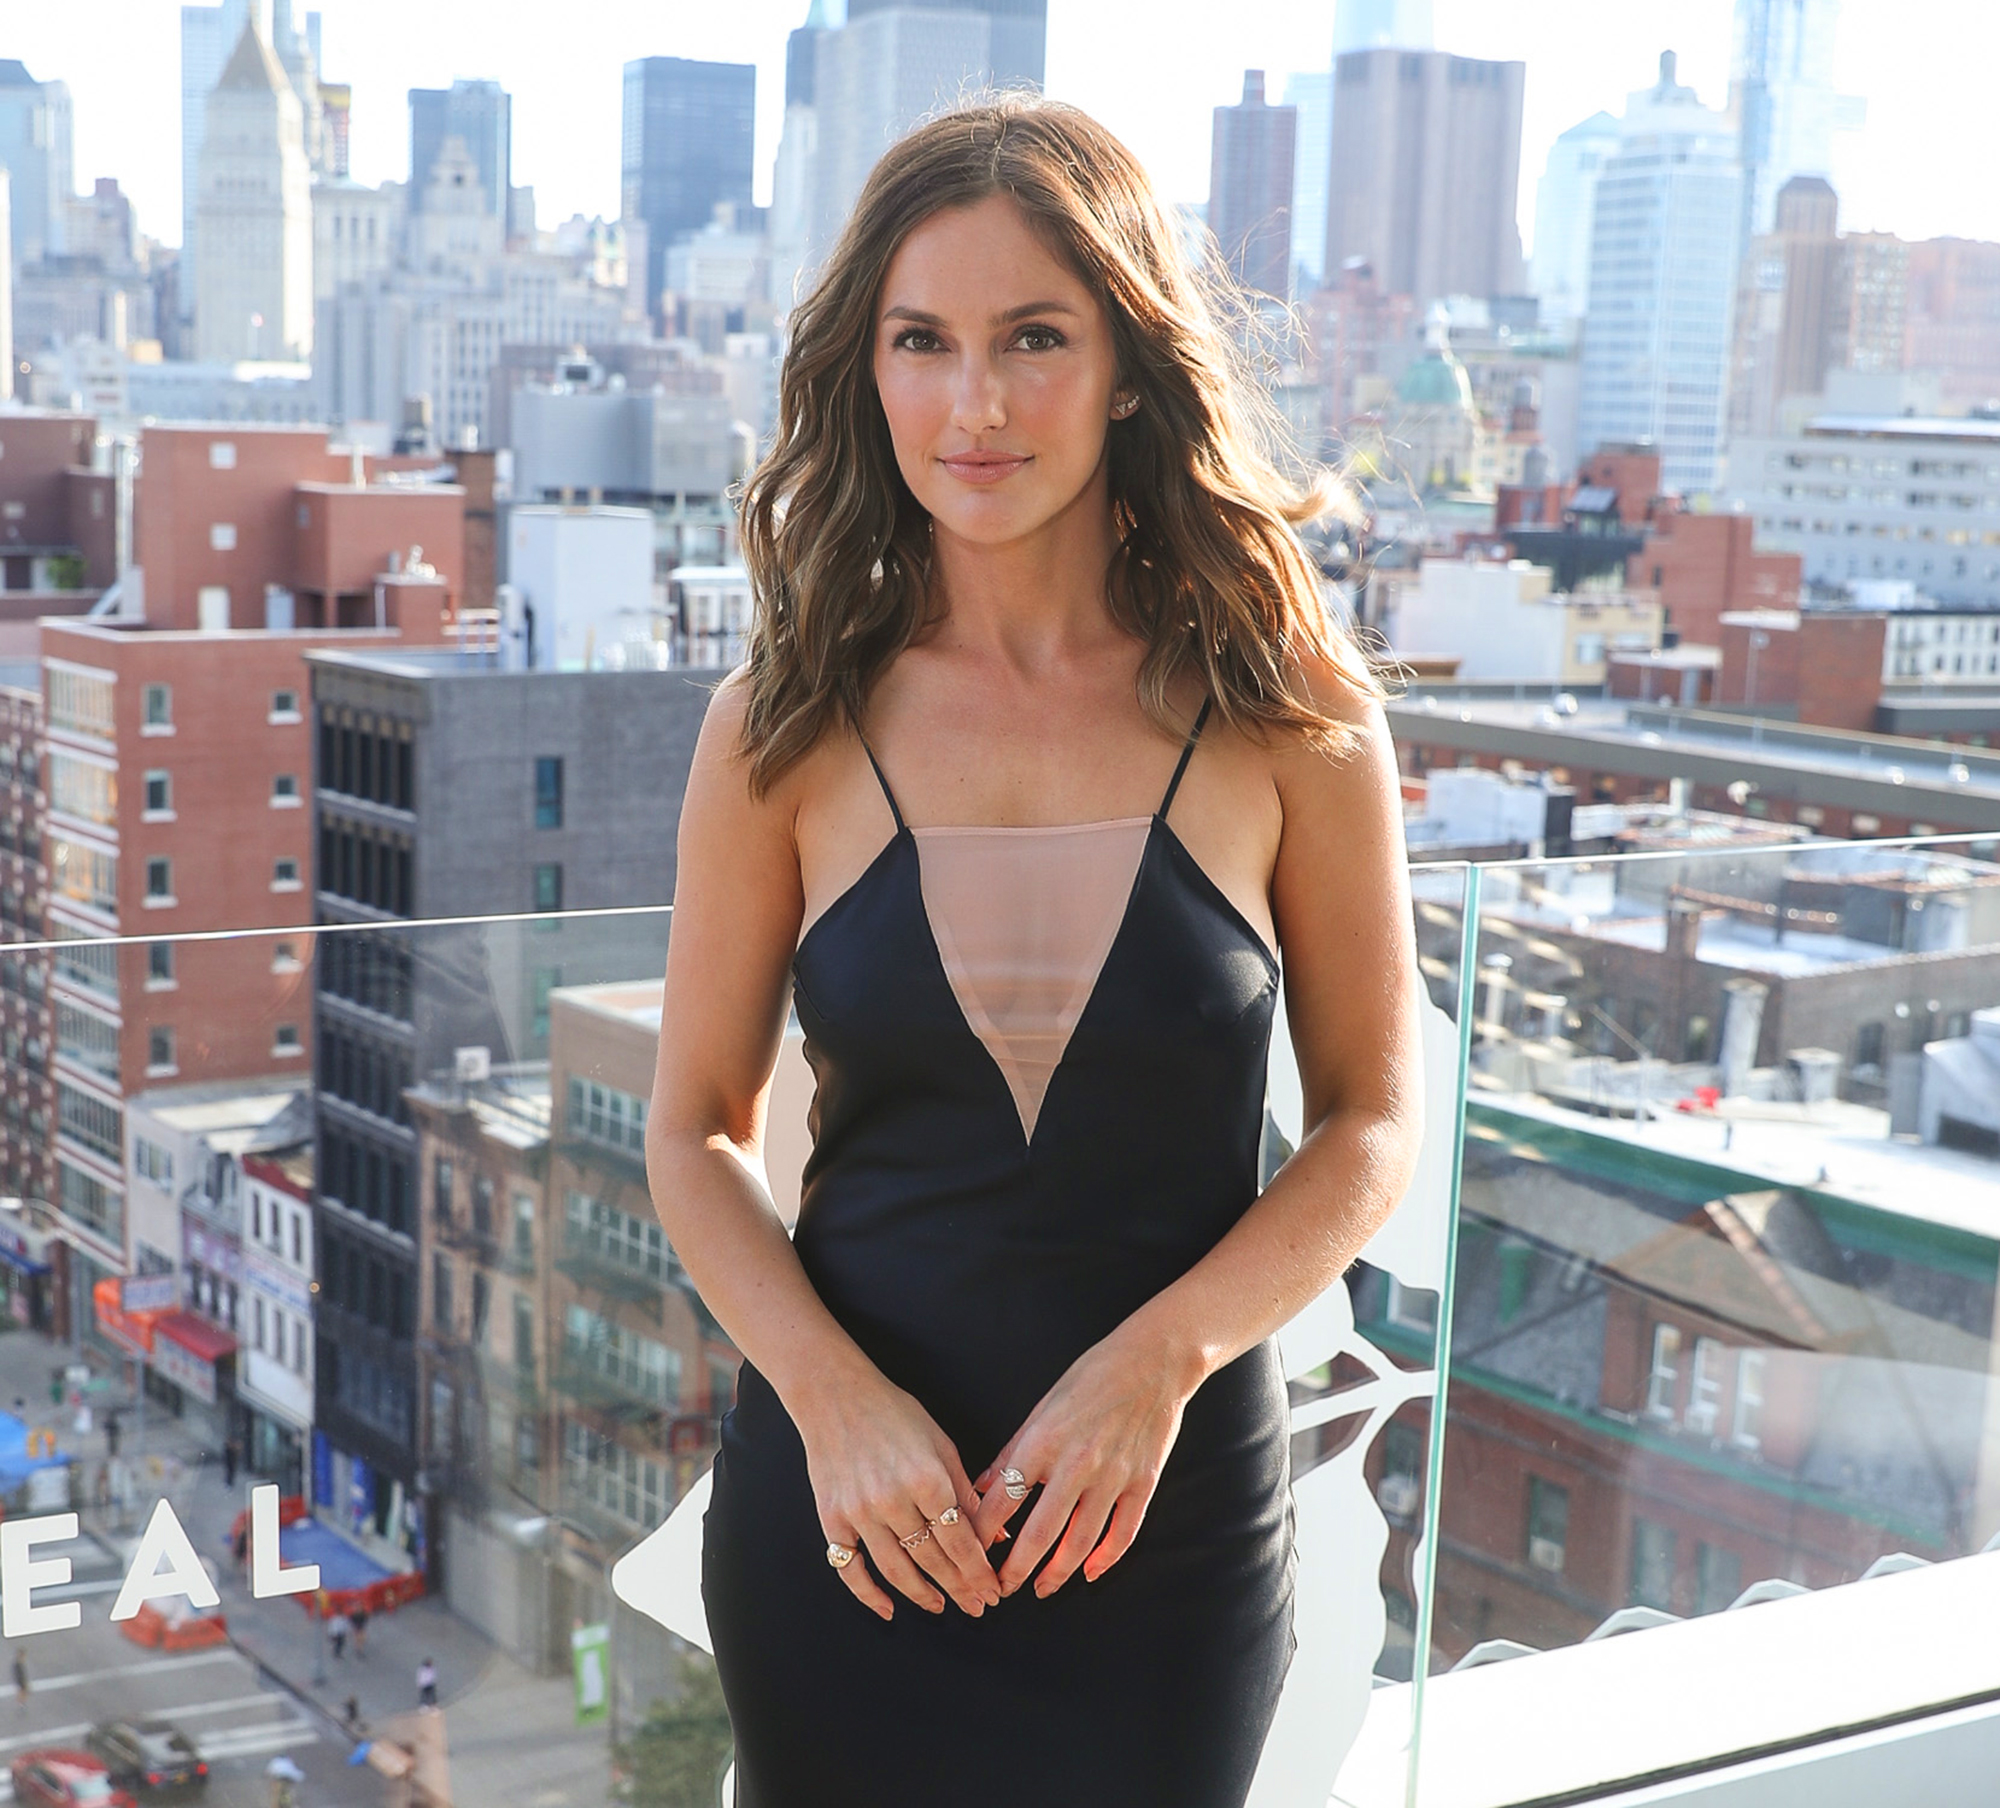 Minka Kelly nude photos 2019